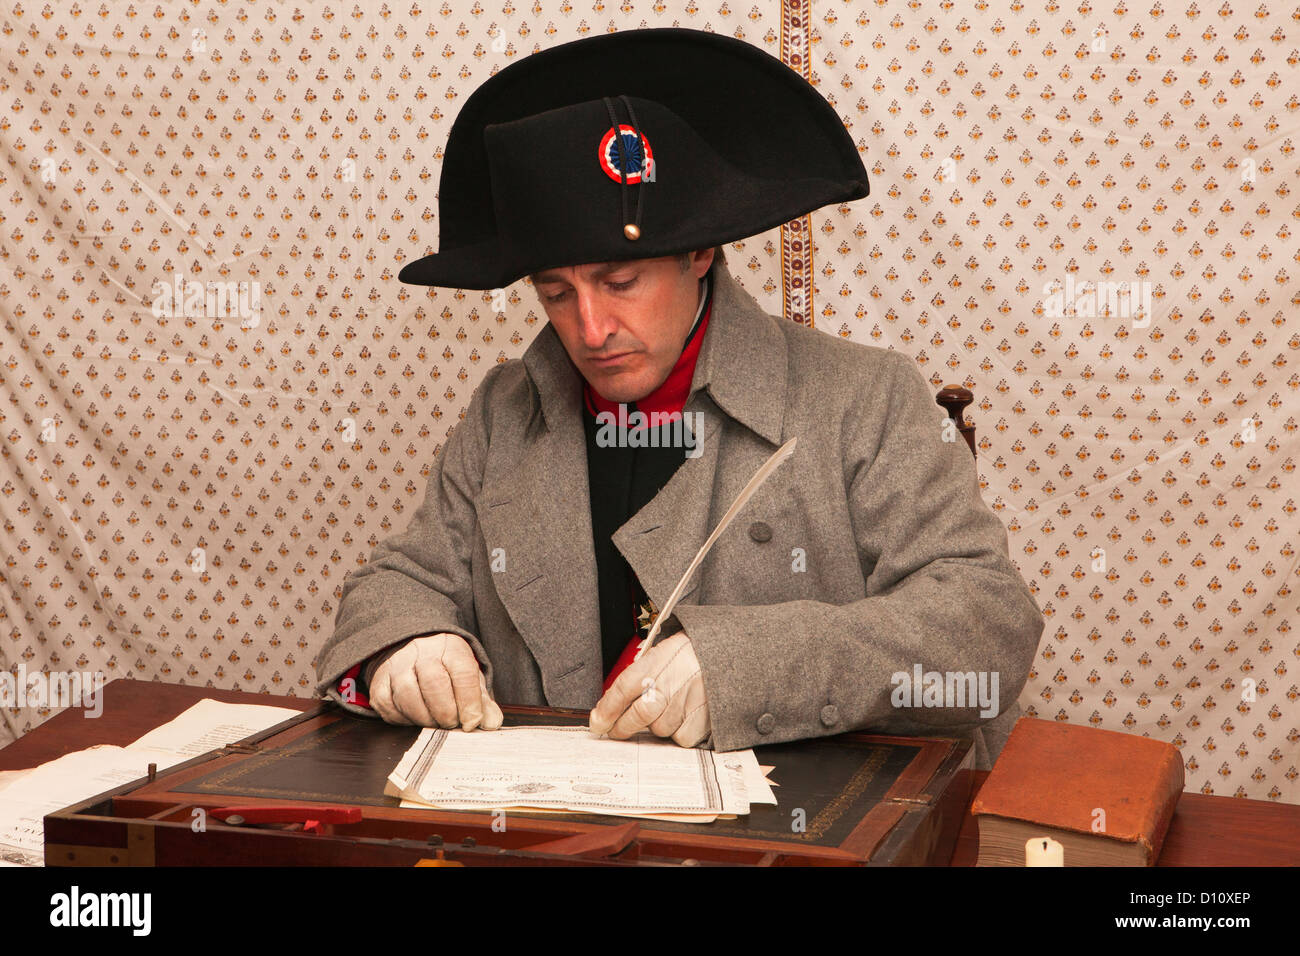 Napoleon Bonaparte signing documents inside his tent at the eve of the Battle of Jean-Auerstedt, Germany Stock Photo